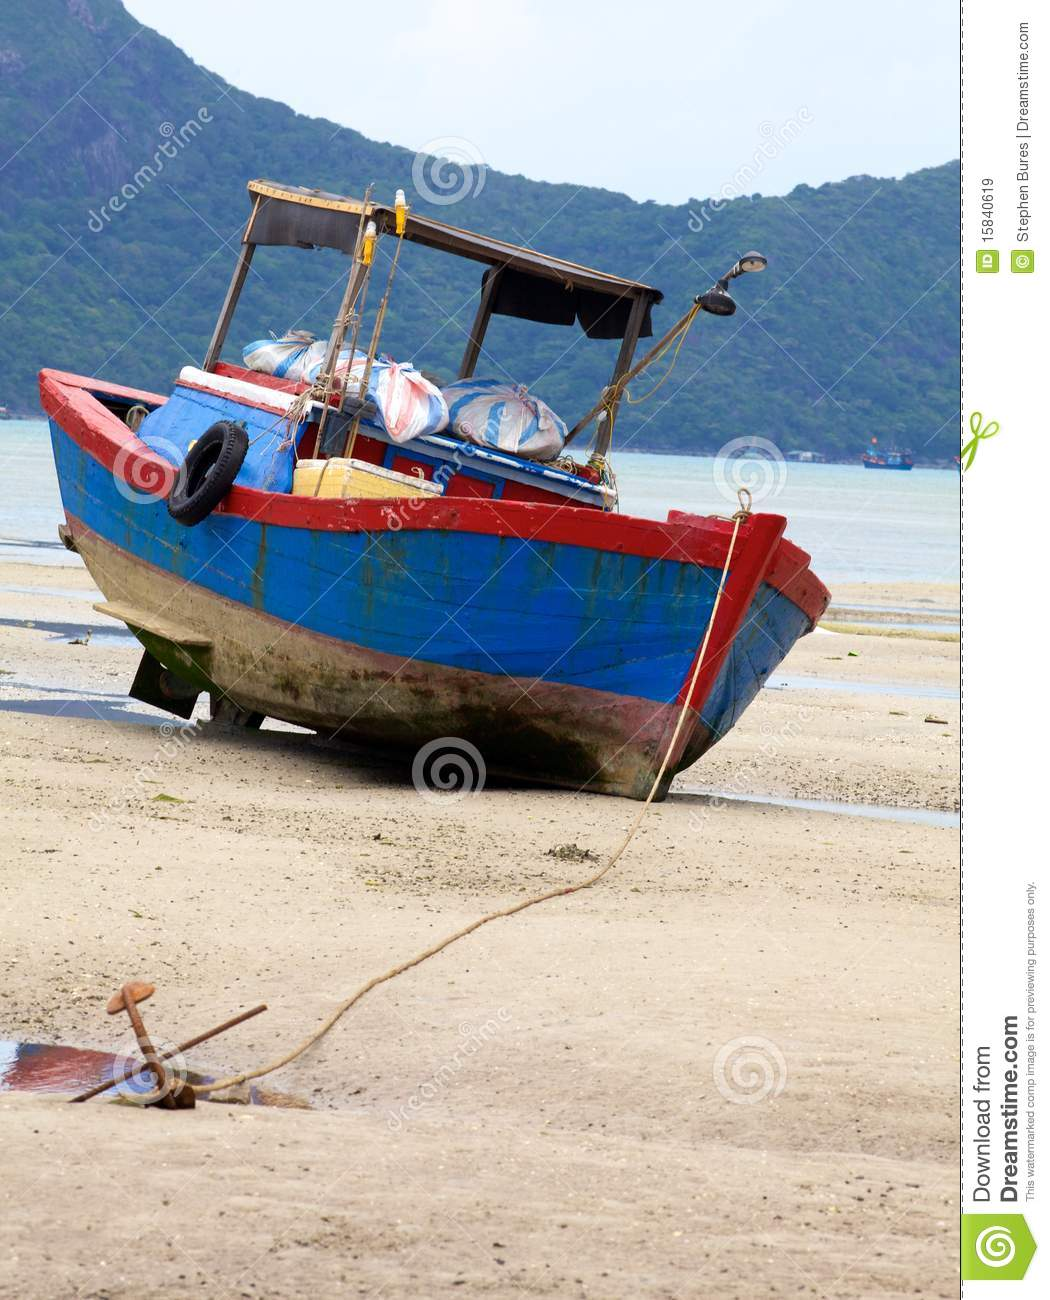 Fishing boat on beach royalty free stock images image for Free fishing boats